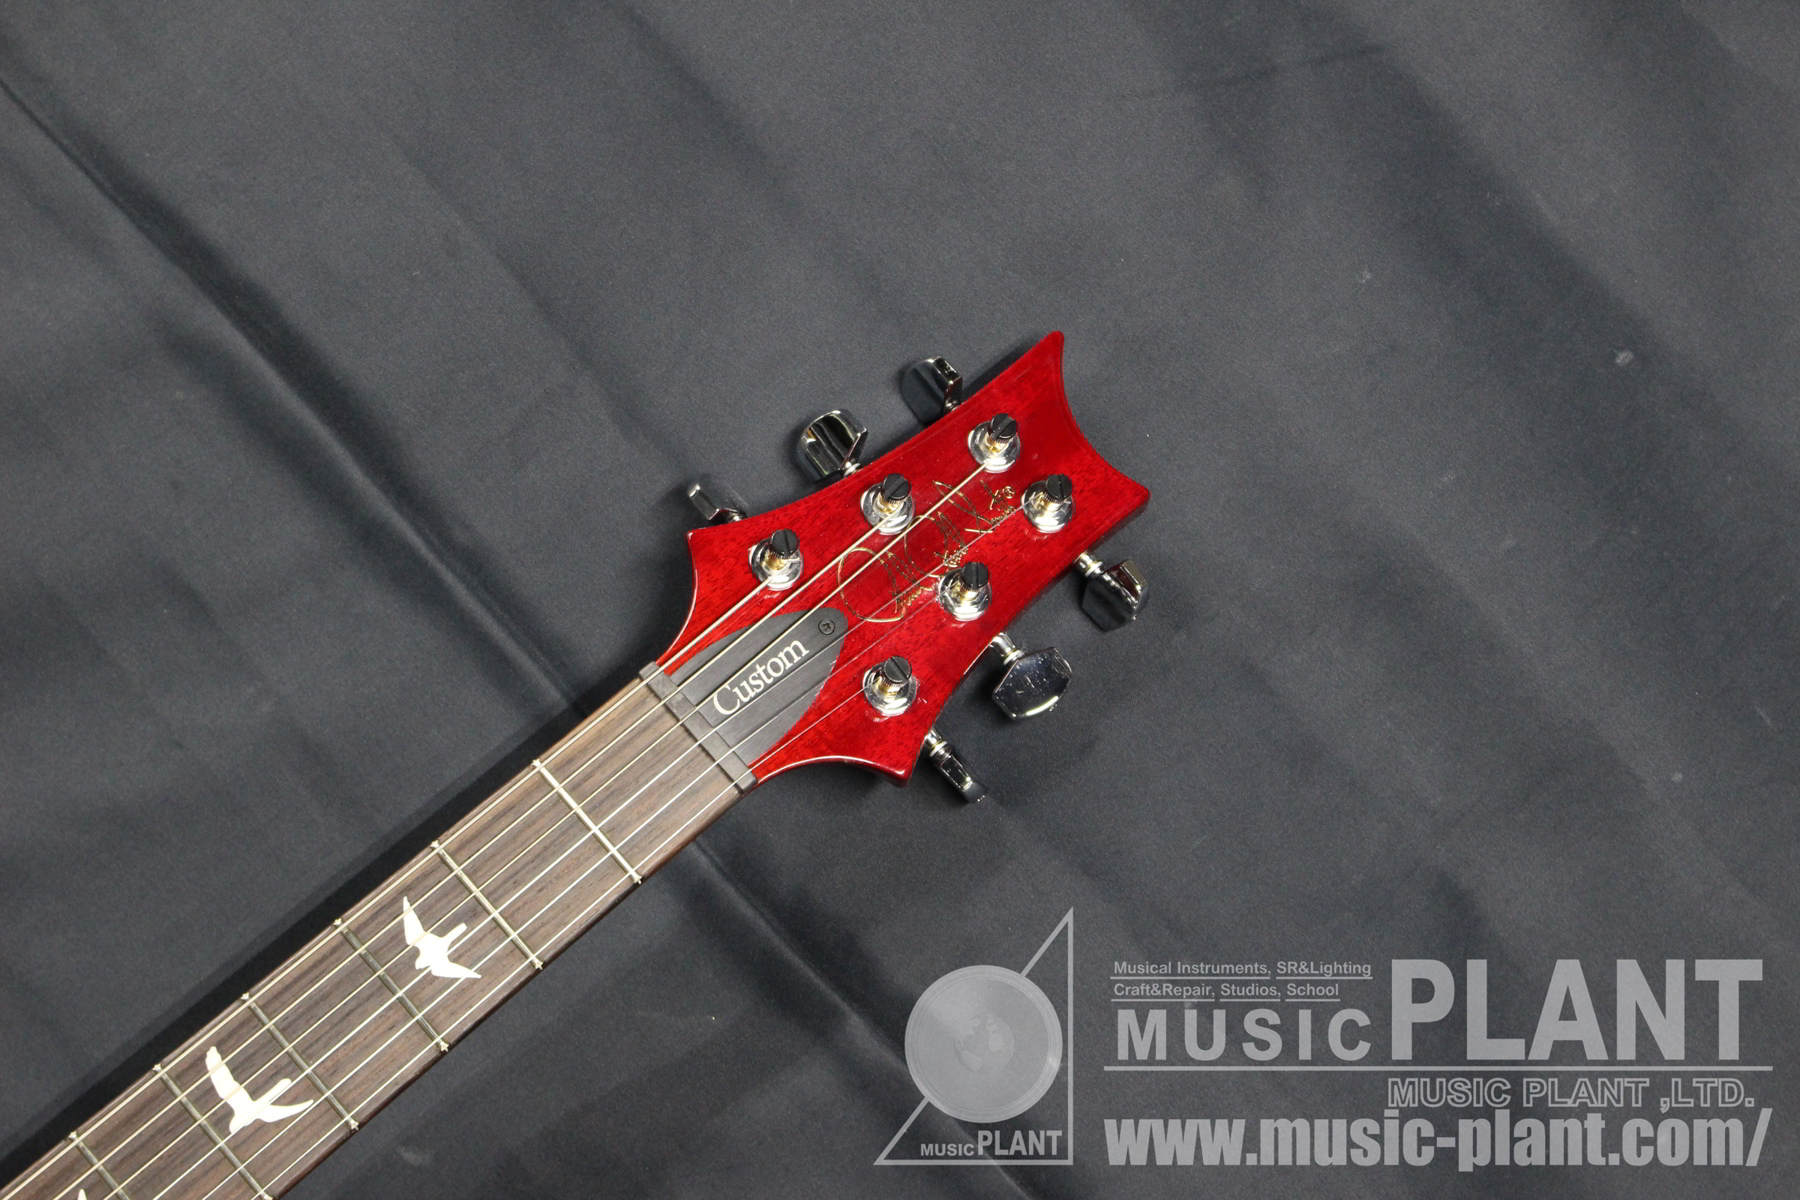 S2 CUSTOM24 Scarlet Redヘッド画像